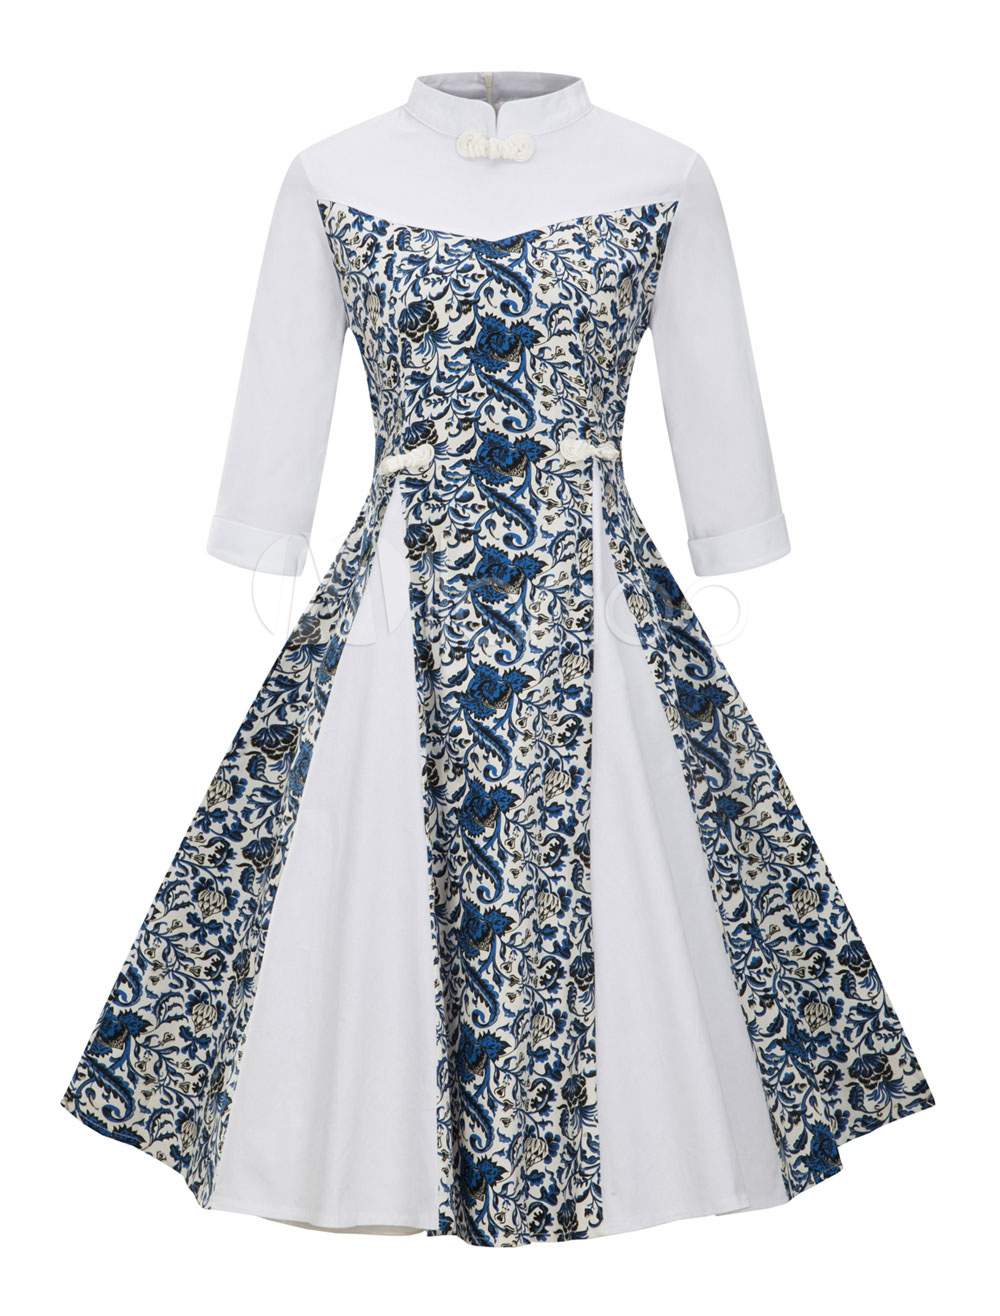 White Vintage Dresses Stand Collar Long Sleeve Chinese Style Floral Print A Line Midi Dress For Women (Women\\'s Clothing) photo